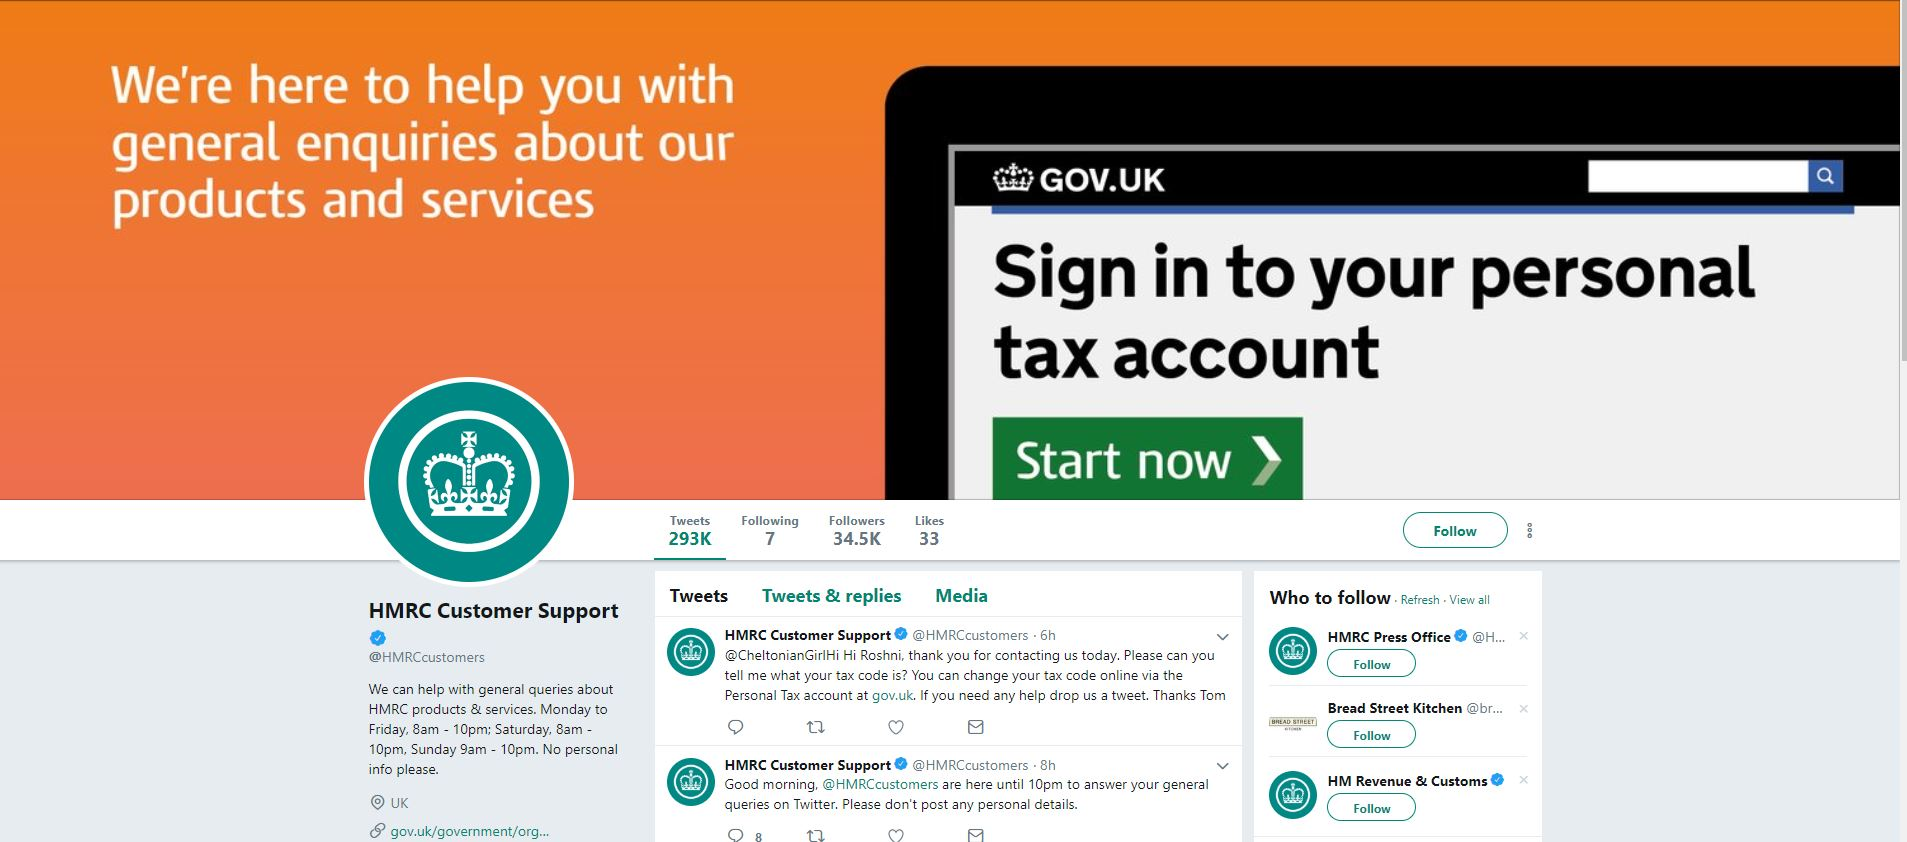 HMRC Customer Support Twitter page